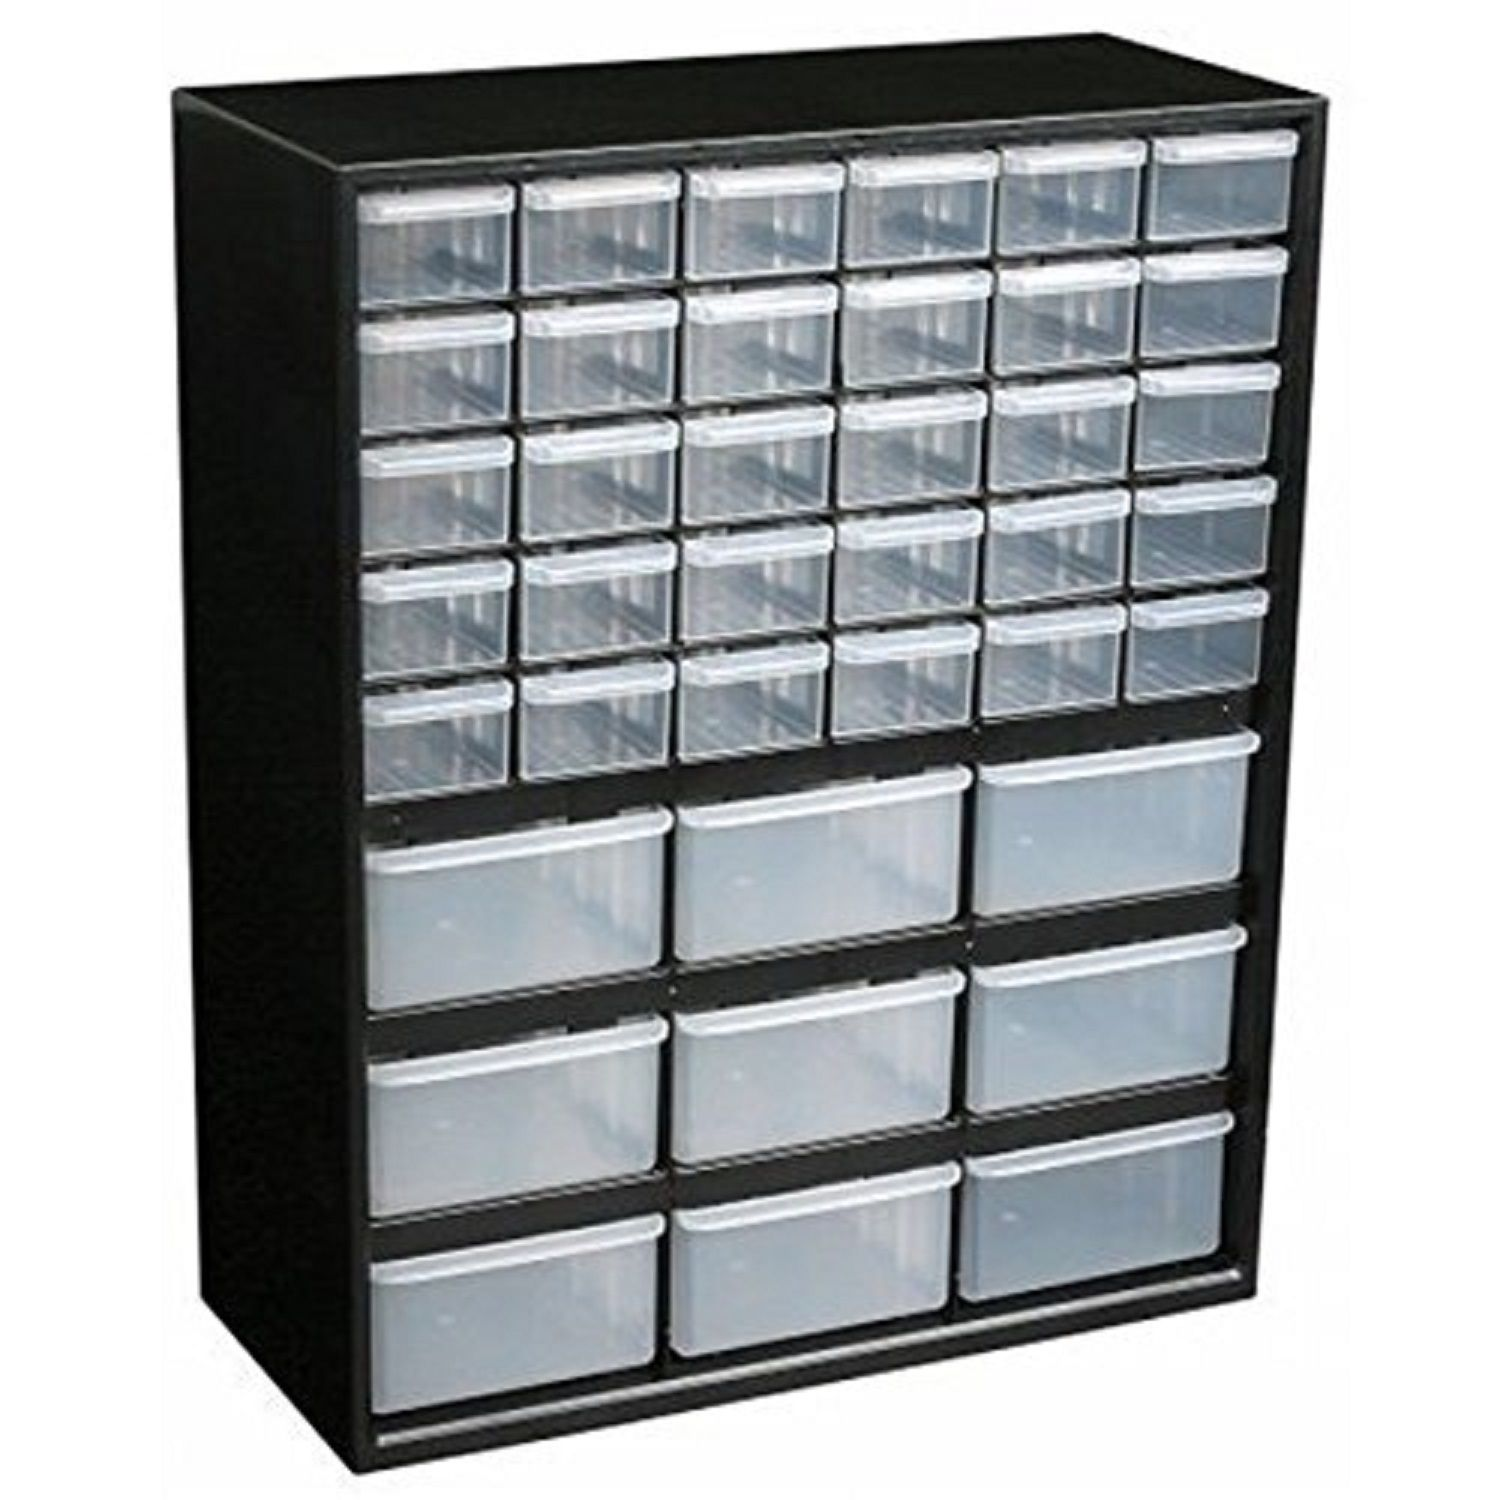 Garage Cabinets Overstock Flambeau Hardware 39 Drawer Part Storage Cabinet Black